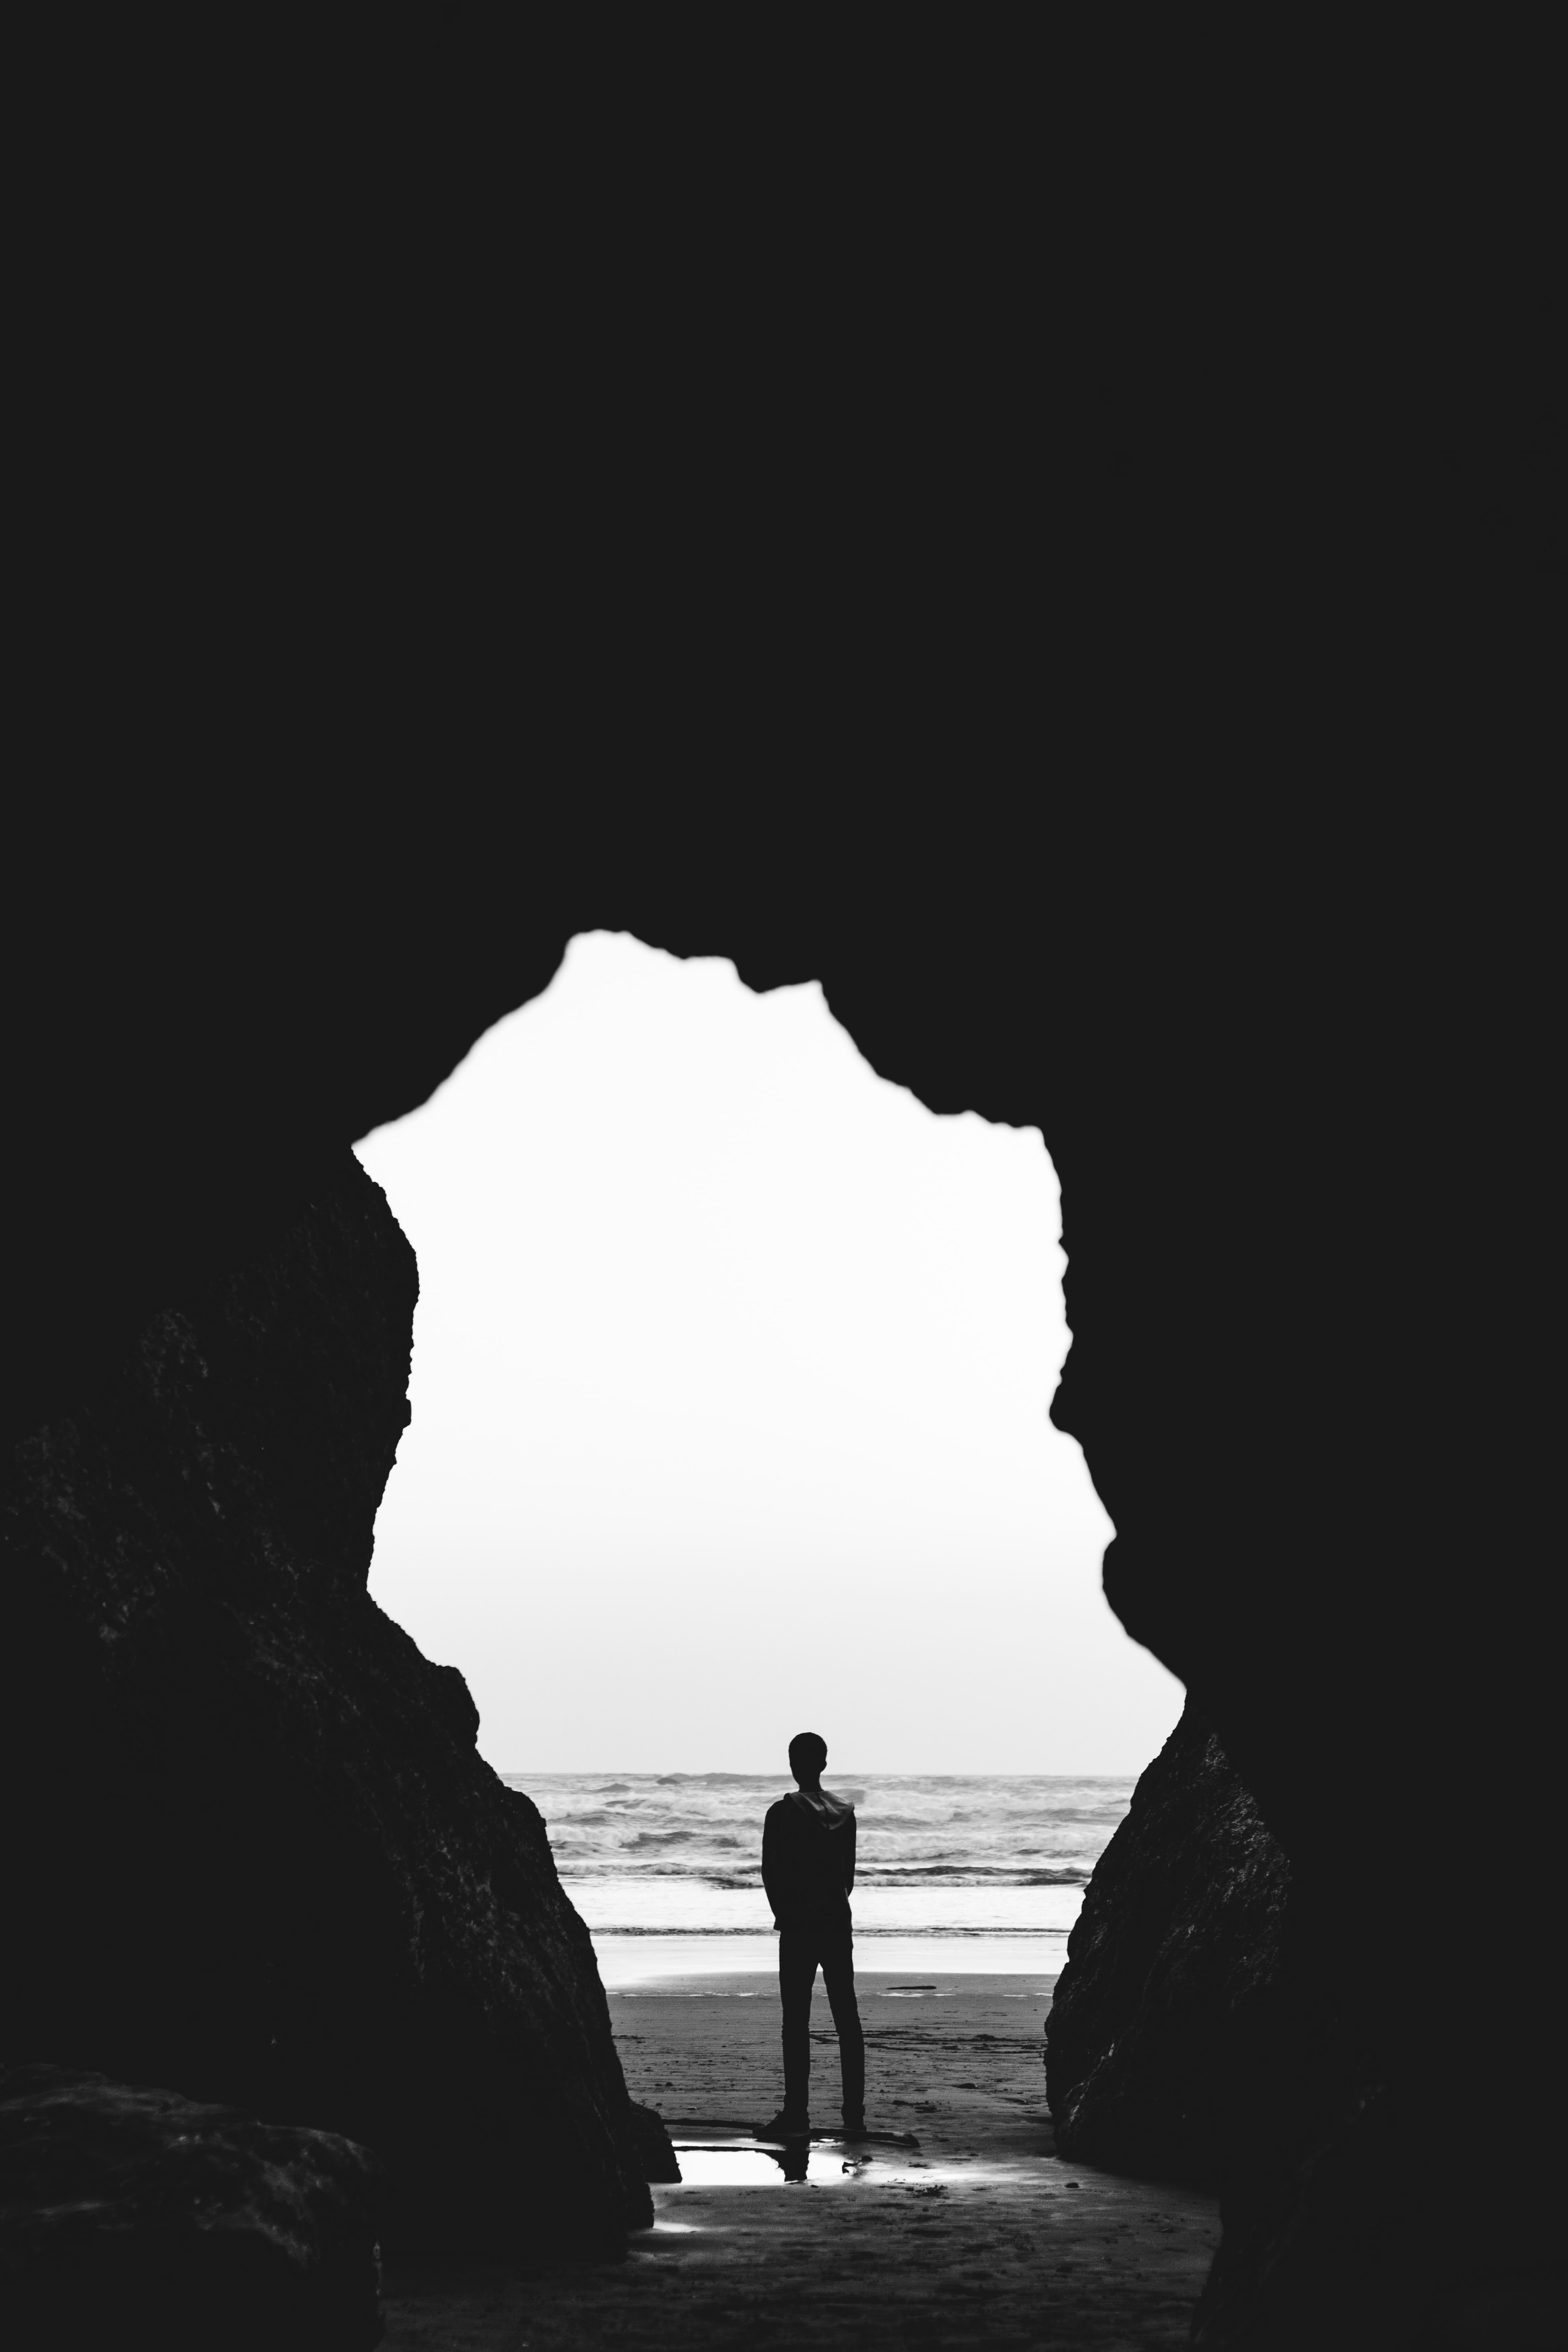 grayscale photography of man standing on seashore